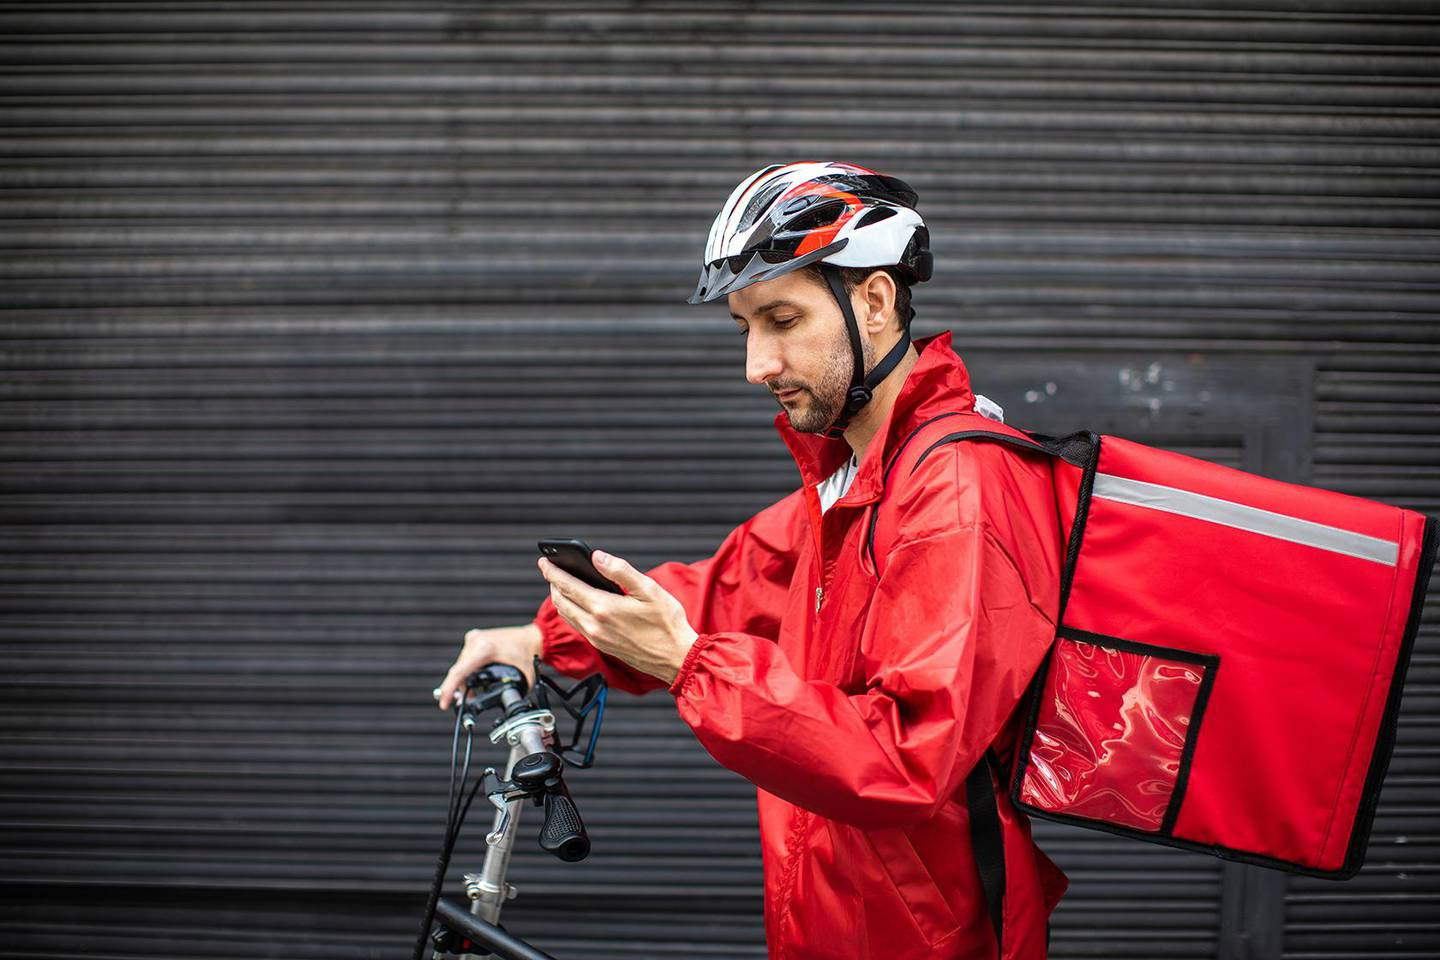 Male Bicycle delivery commuter with road bicycle in the city, using mobile phone to find customer location